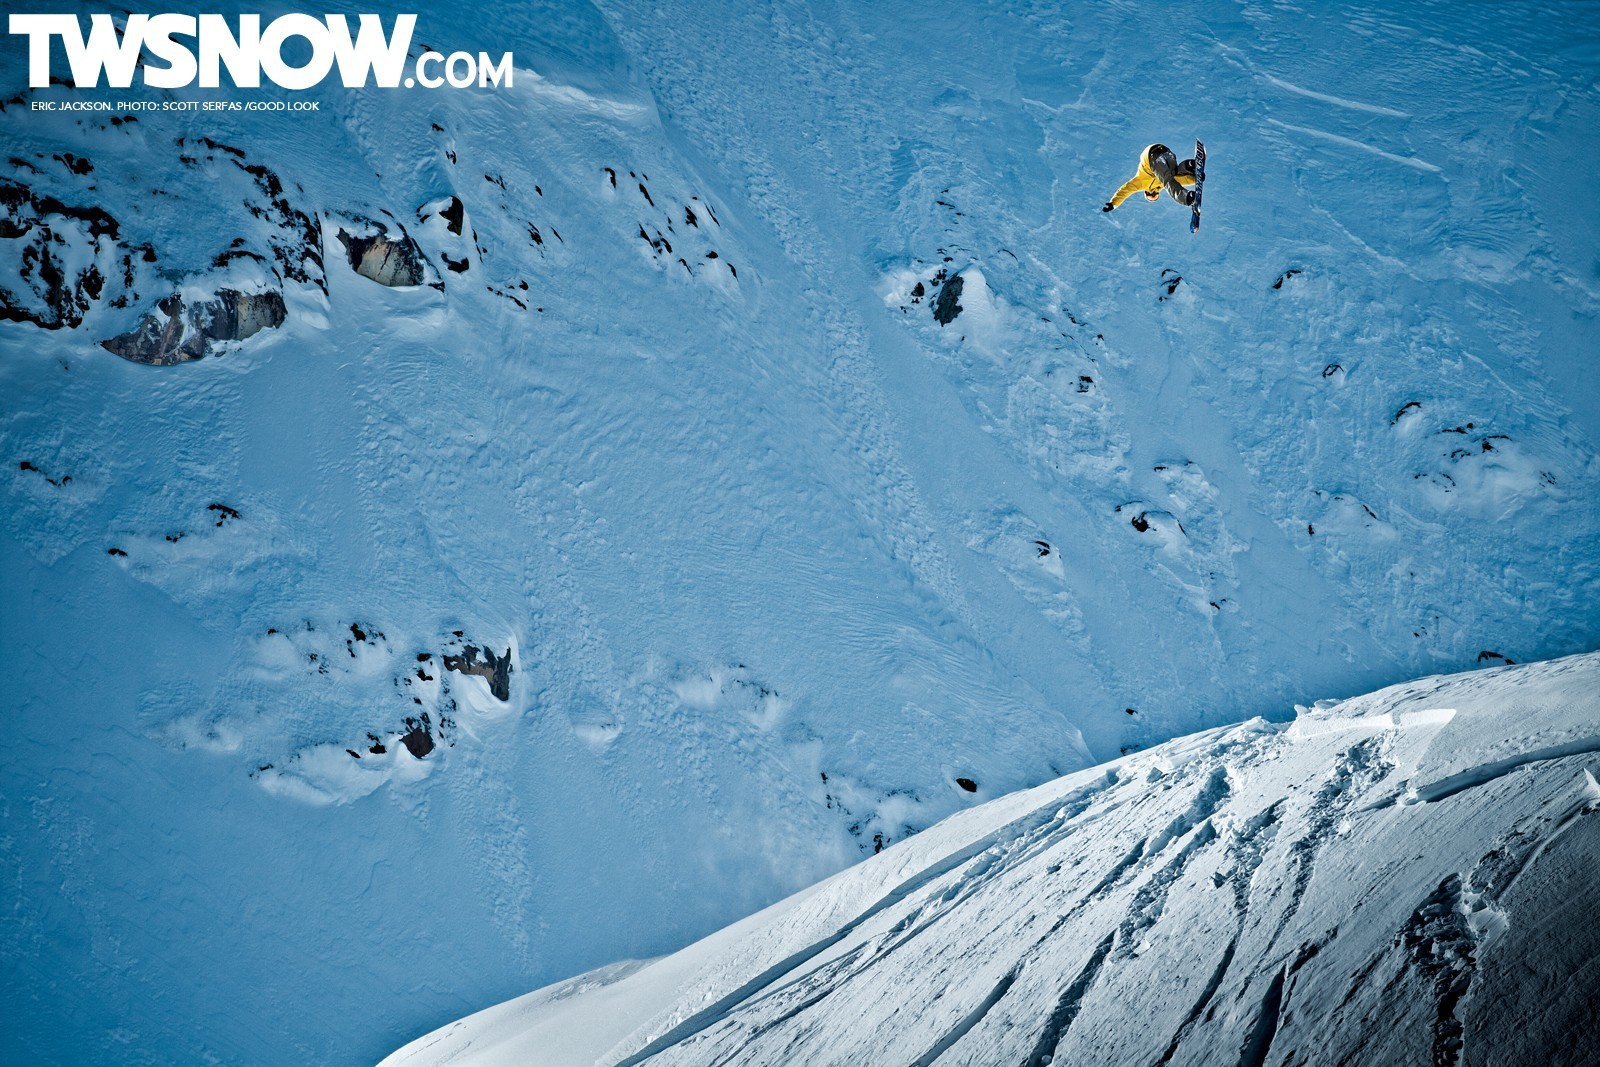 Mountains Sports Snowboarding HD Wallpaper